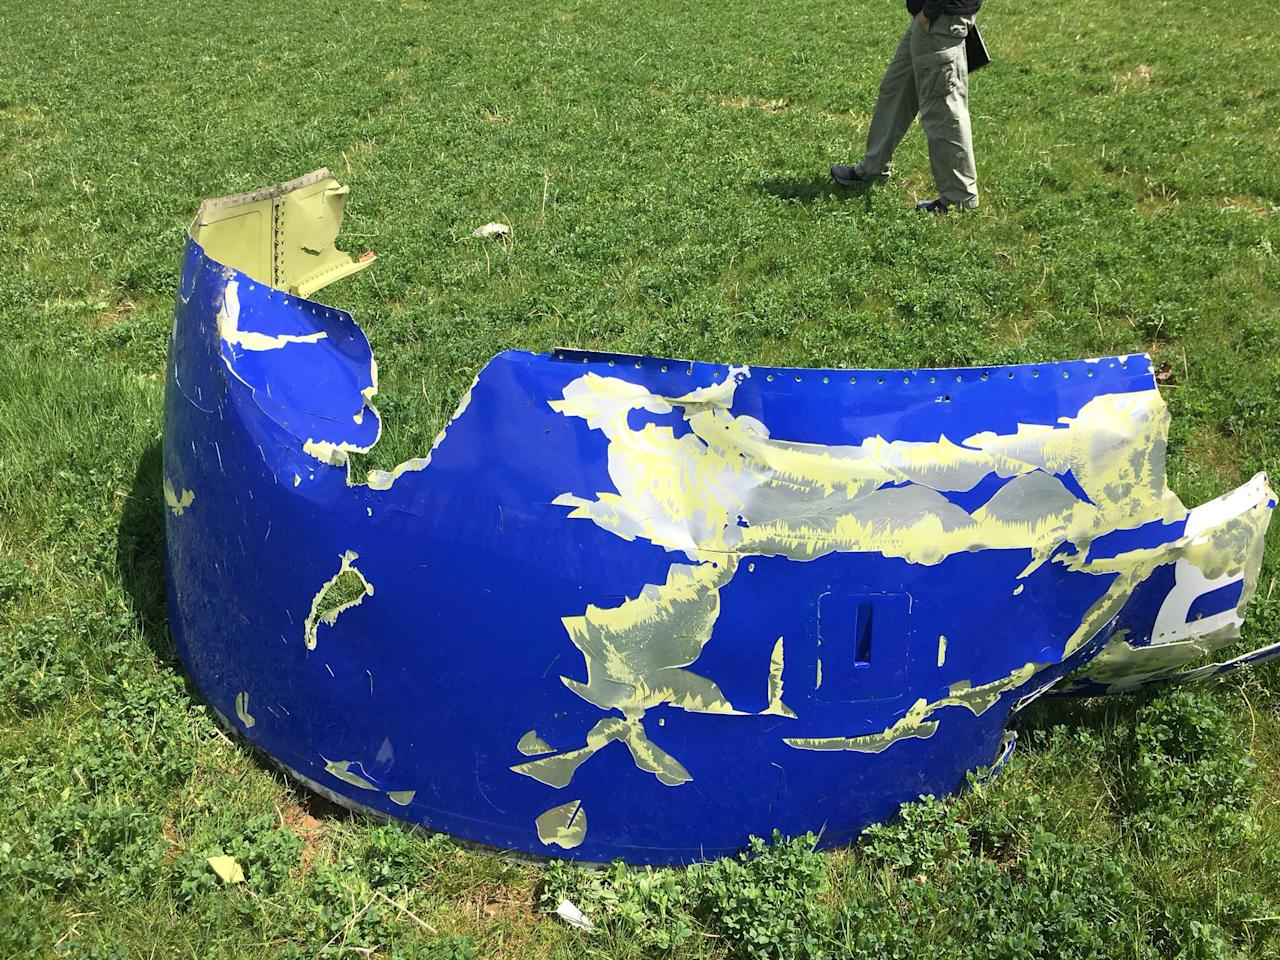 <p>A NTSB photo shows a part of the engine cowling from the Southwest Airlines plane which blew its engine in mid air yesterday over the skies of Philadelphia, Pa., in this image released on April 18, 2018. (Photo: NTSB/Handout via Reuters) </p>